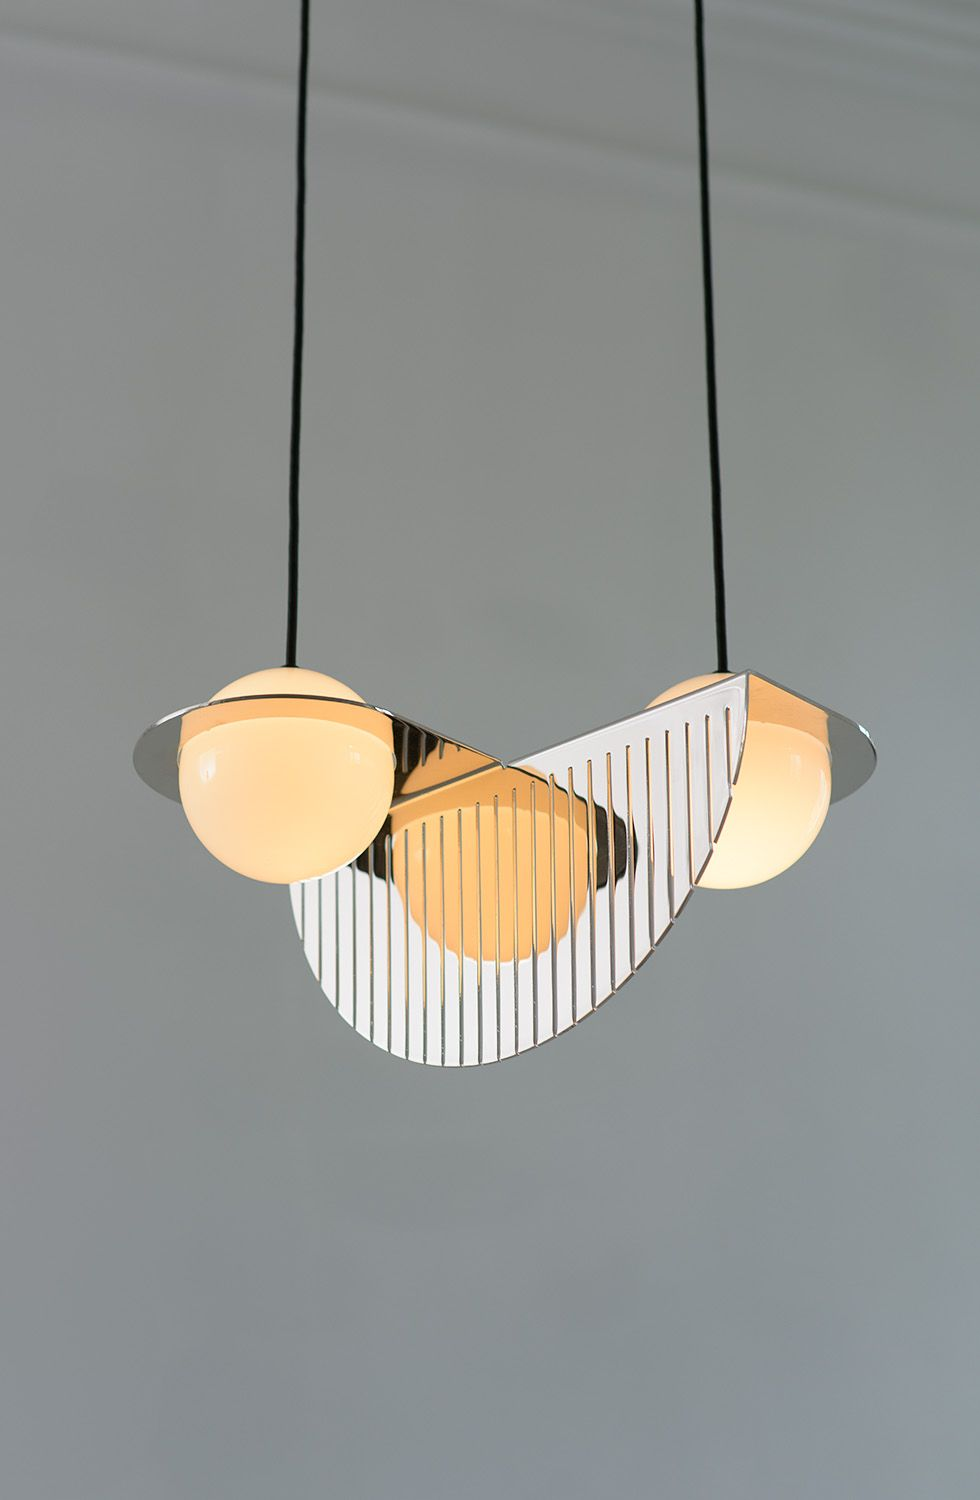 modern lighting fixtures top contemporary lighting design. Modern Handmade Lighting From Lambert \u0026 Fils. Discover This Incredible Collection Of Contemporary And Find Out Where You Can See It Live. Fixtures Top Design I